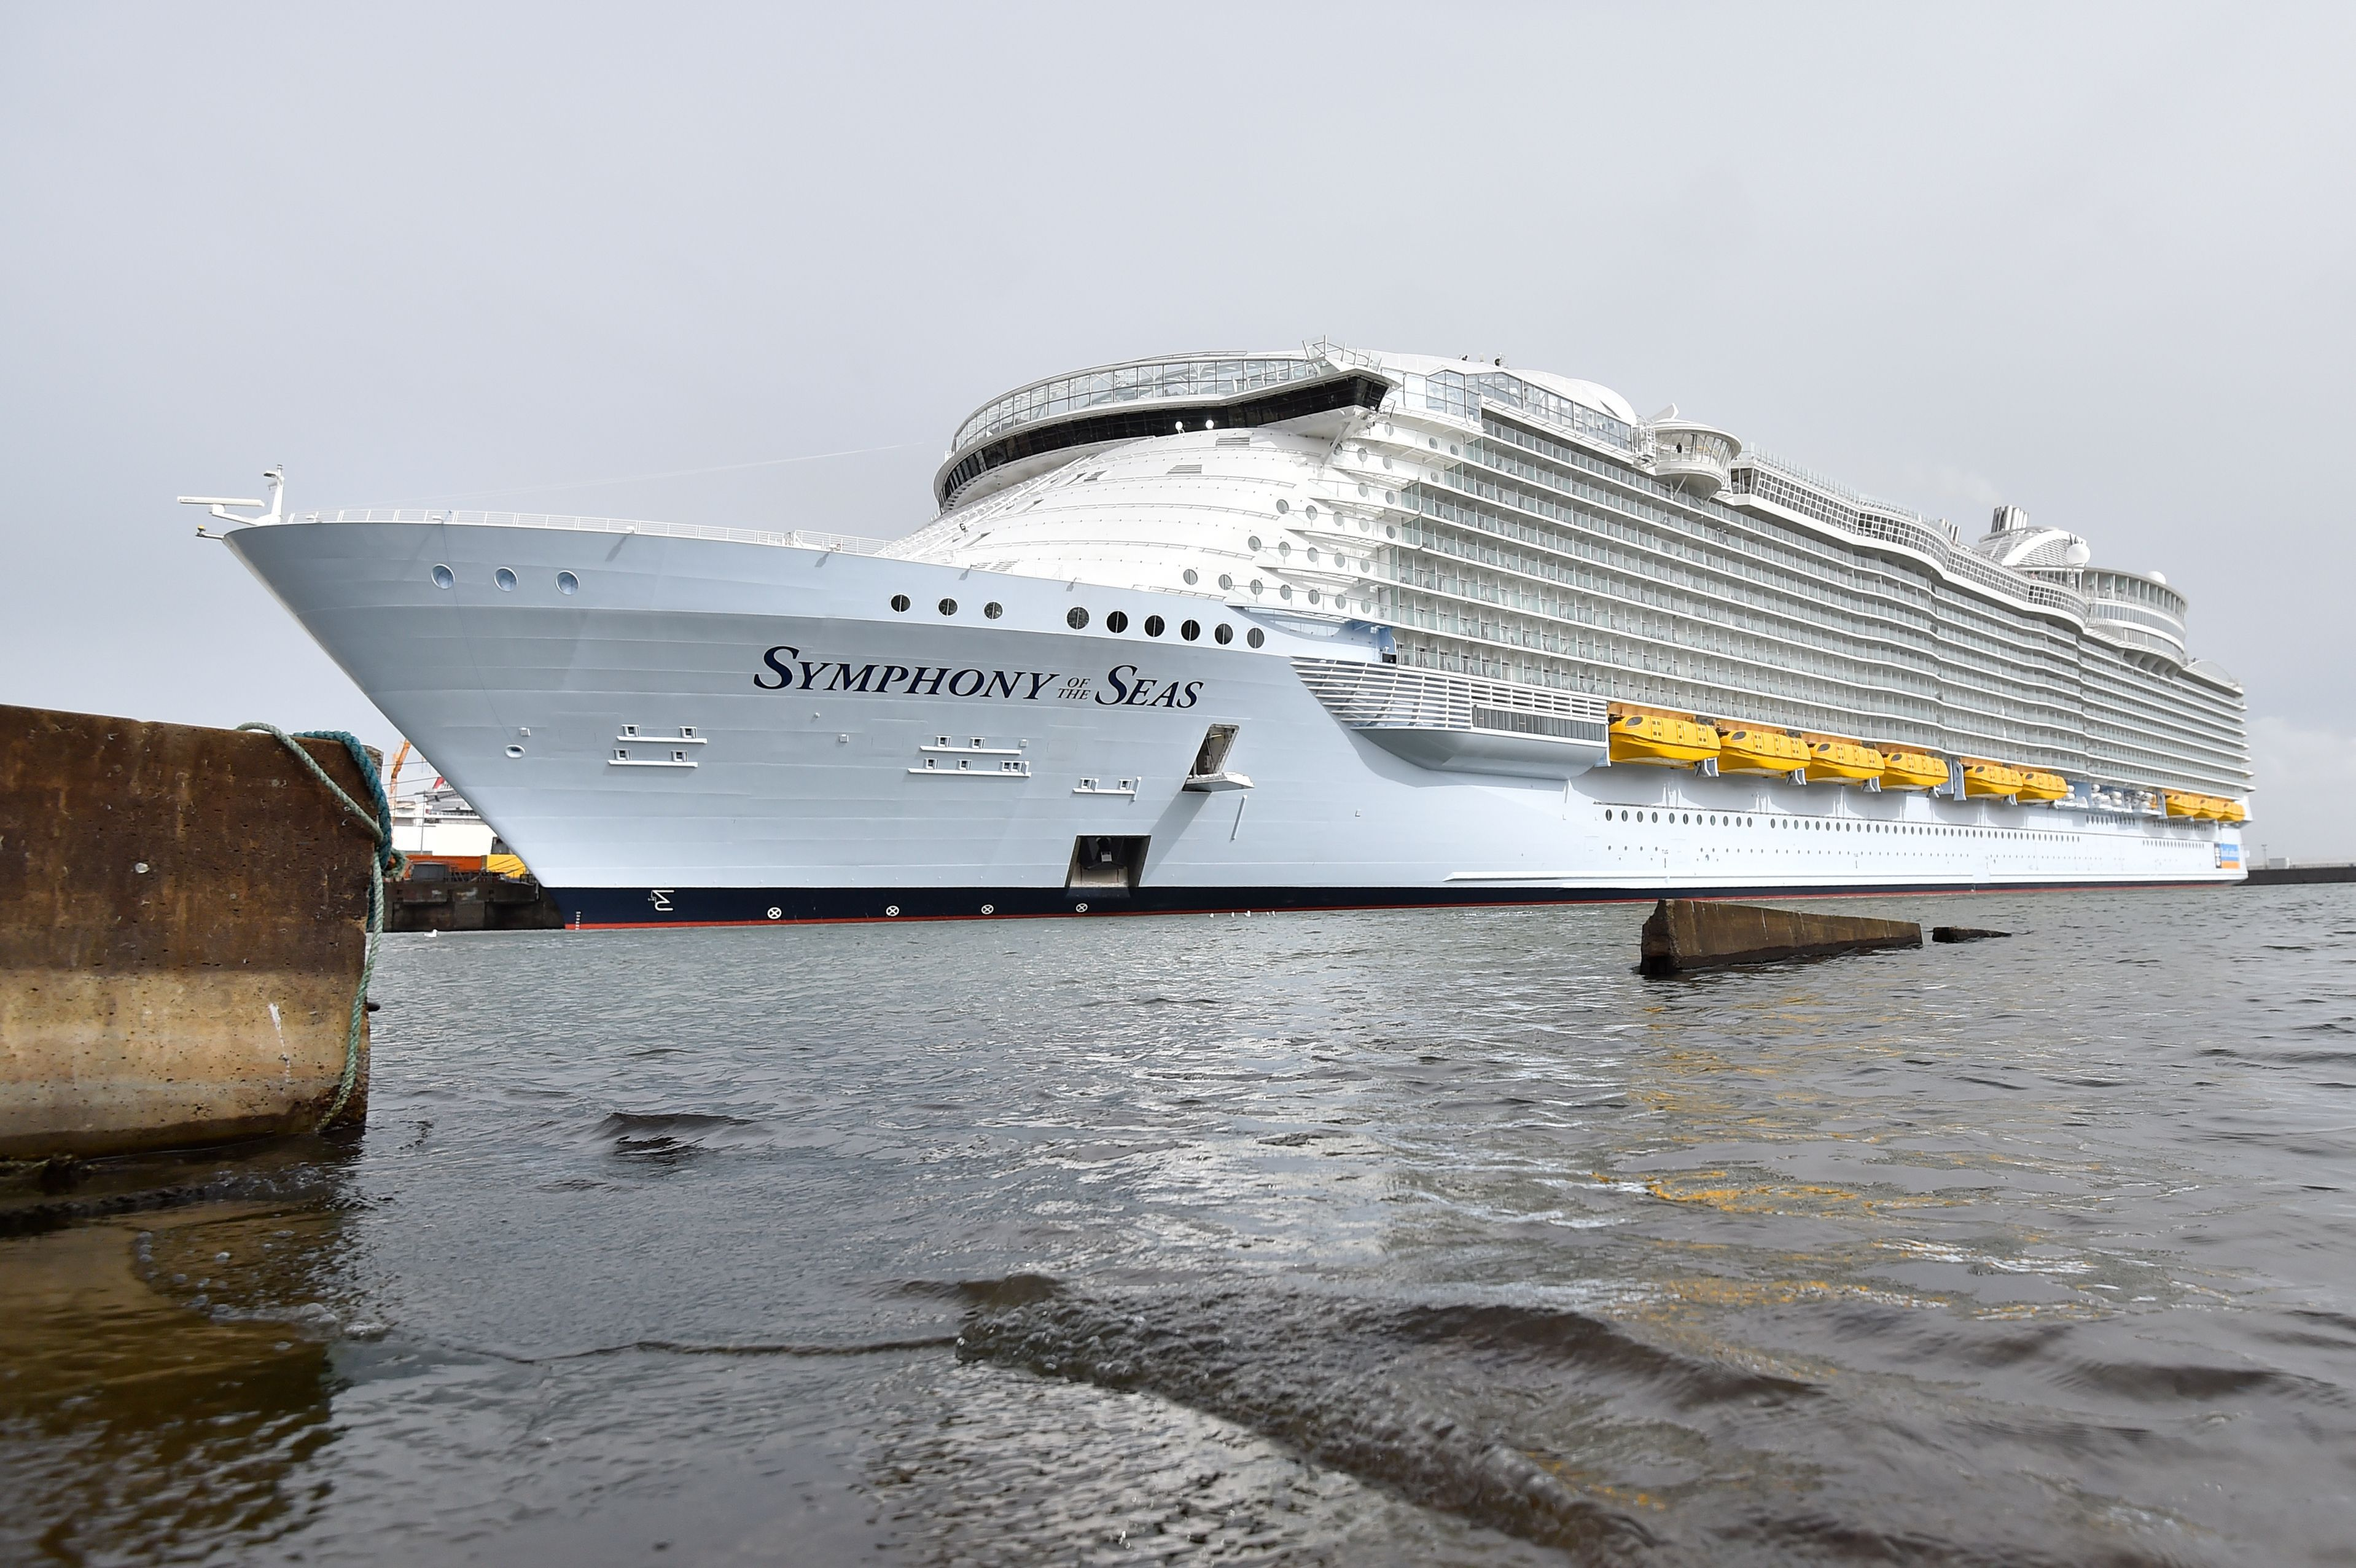 Massive 'Symphony of the Seas' is now world's largest cruise ship ...